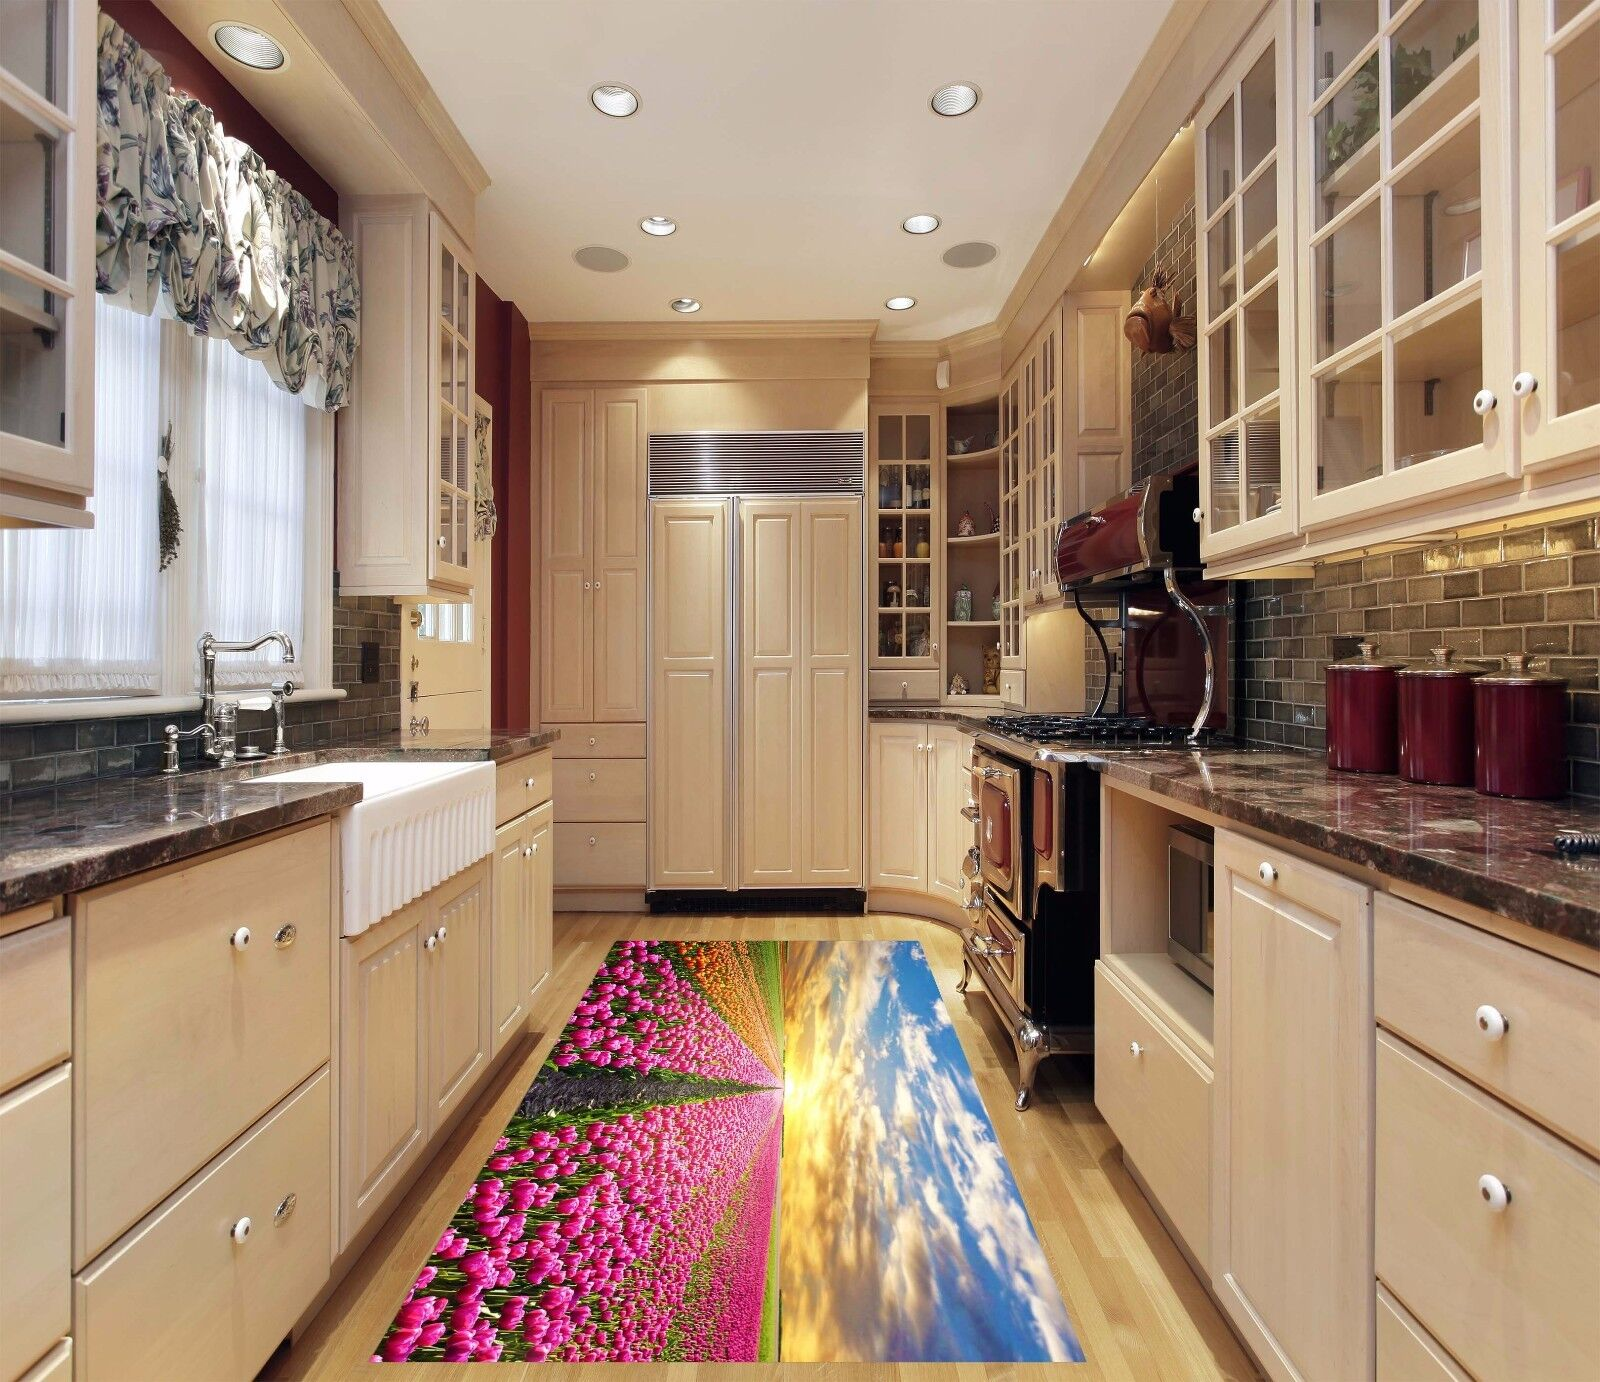 3D Tulips Sunset Kitchen Mat Floor Murals Wall Print Wall Deco AJ WALLPAPER AU